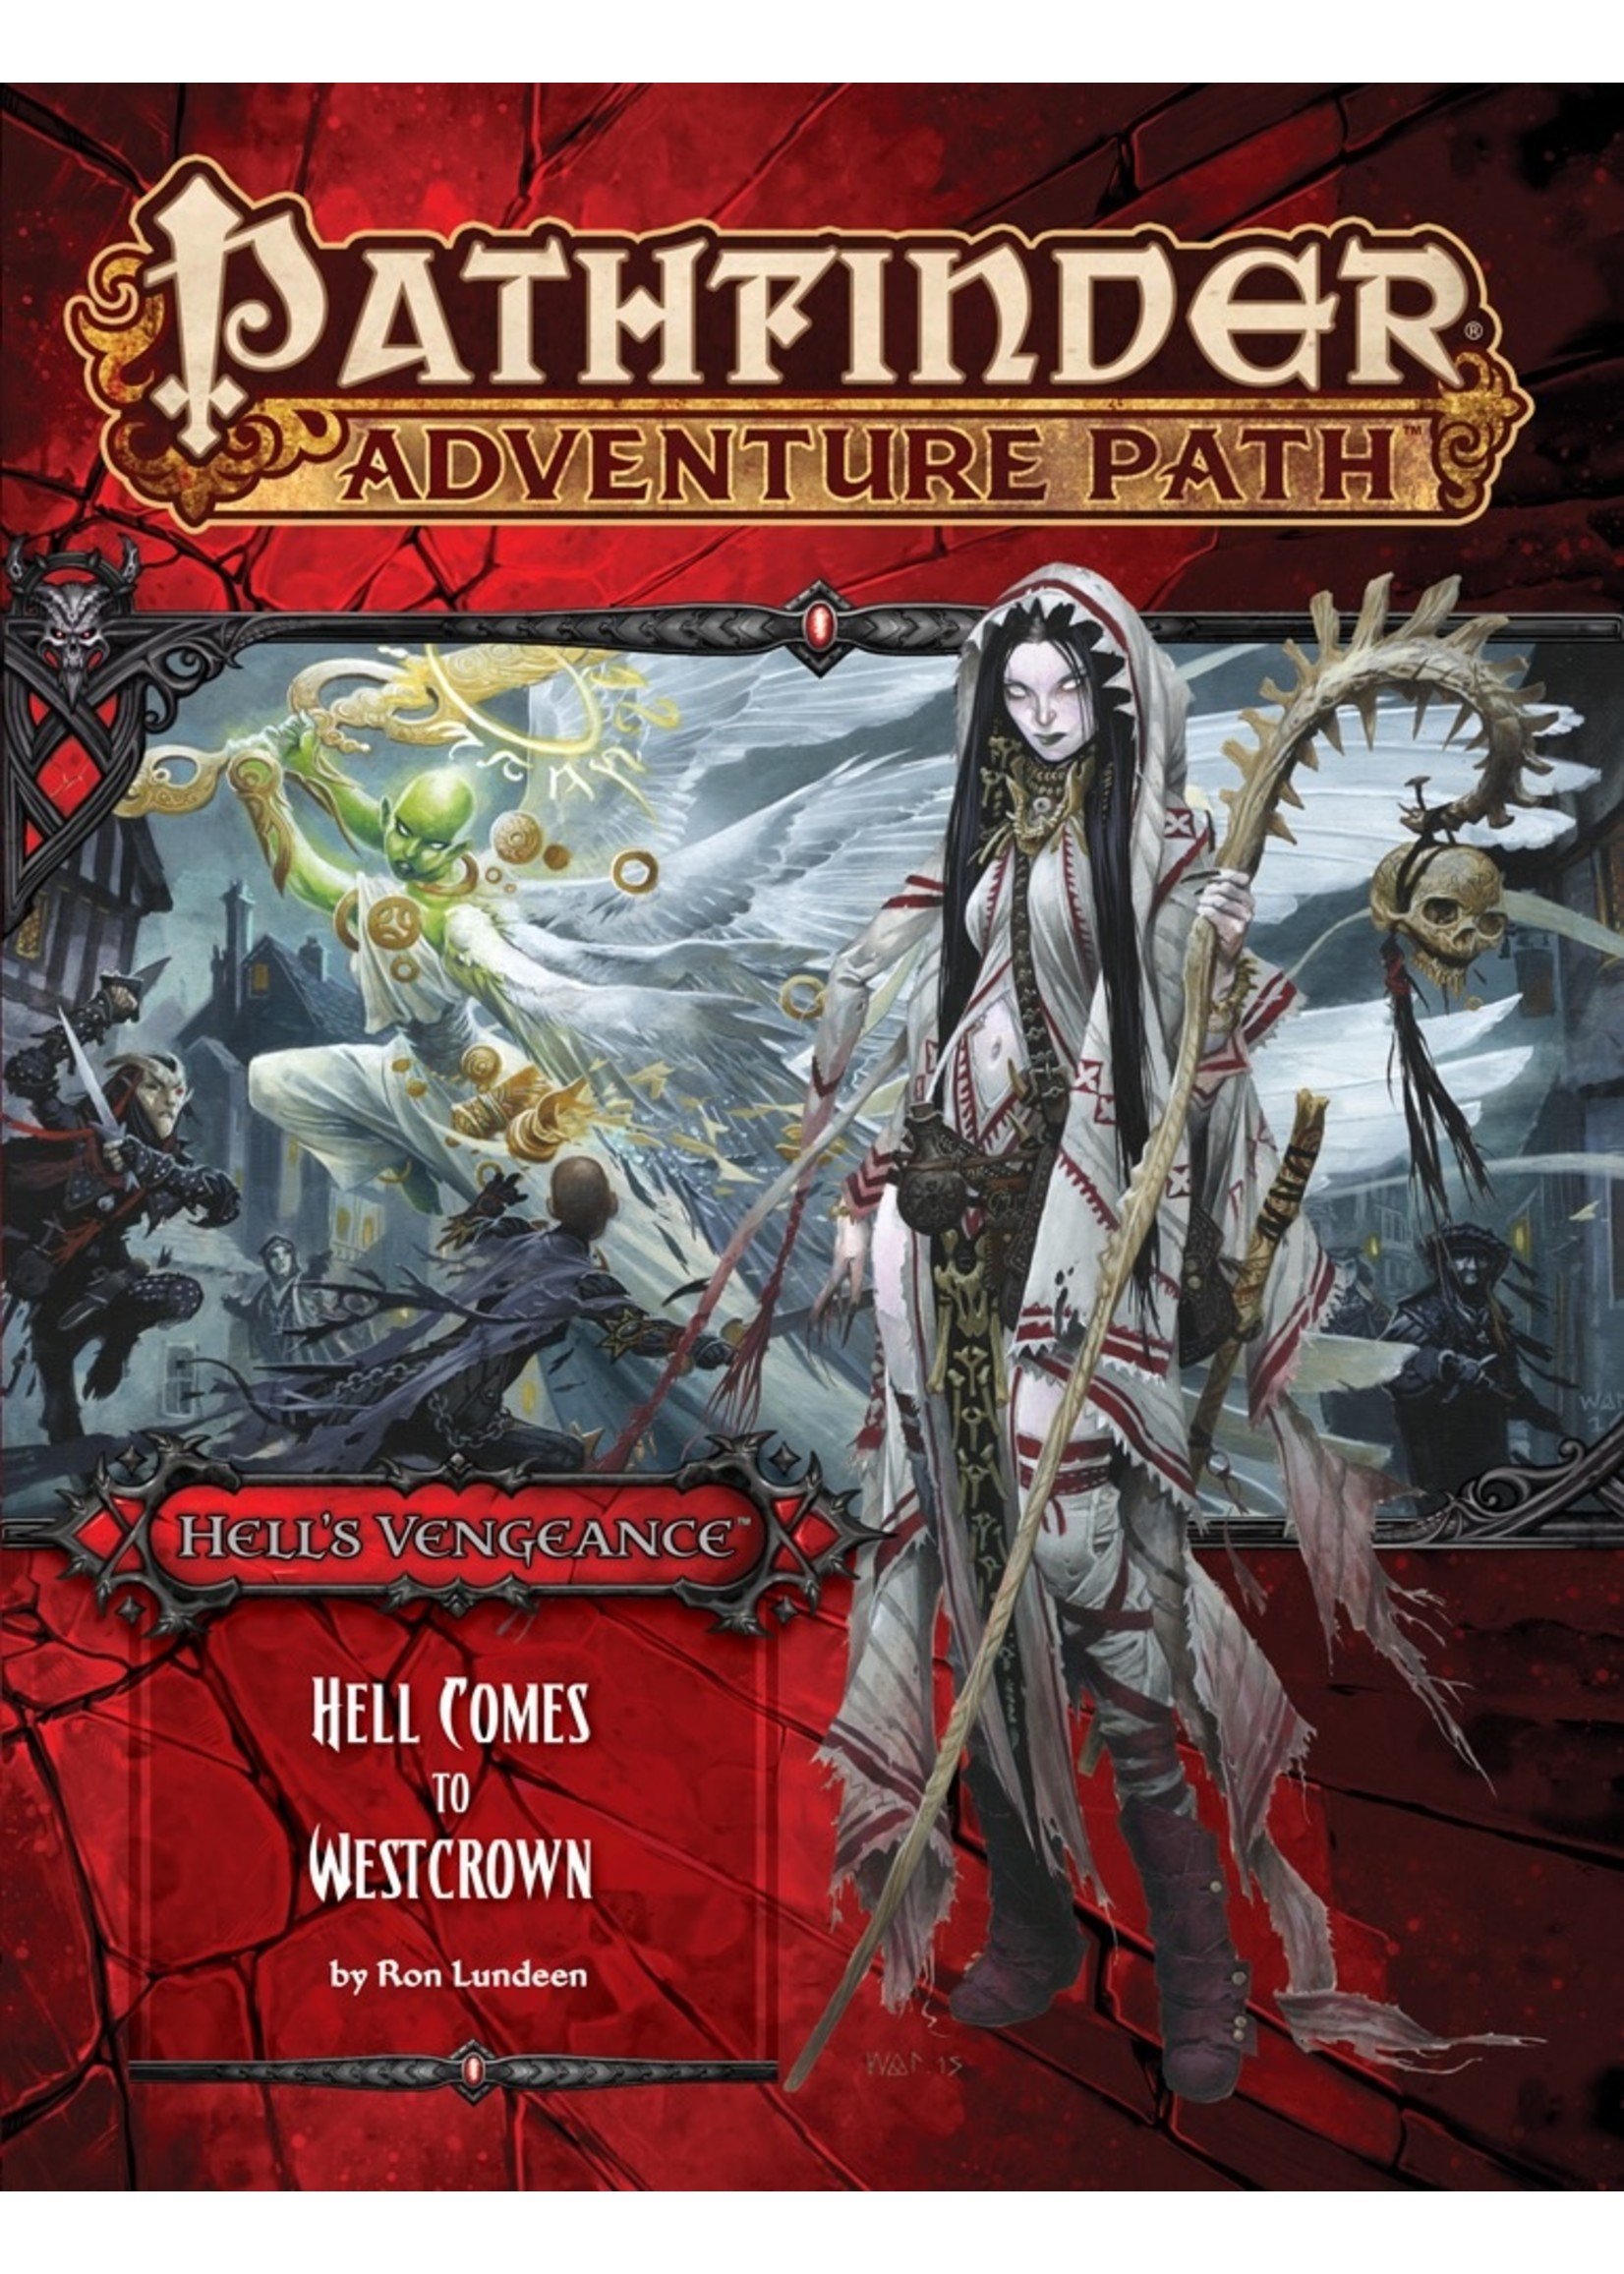 Pathfinder RPG: Adventure Path - Hell's Vengeance Part 6 - Hell Comes to Westcrown